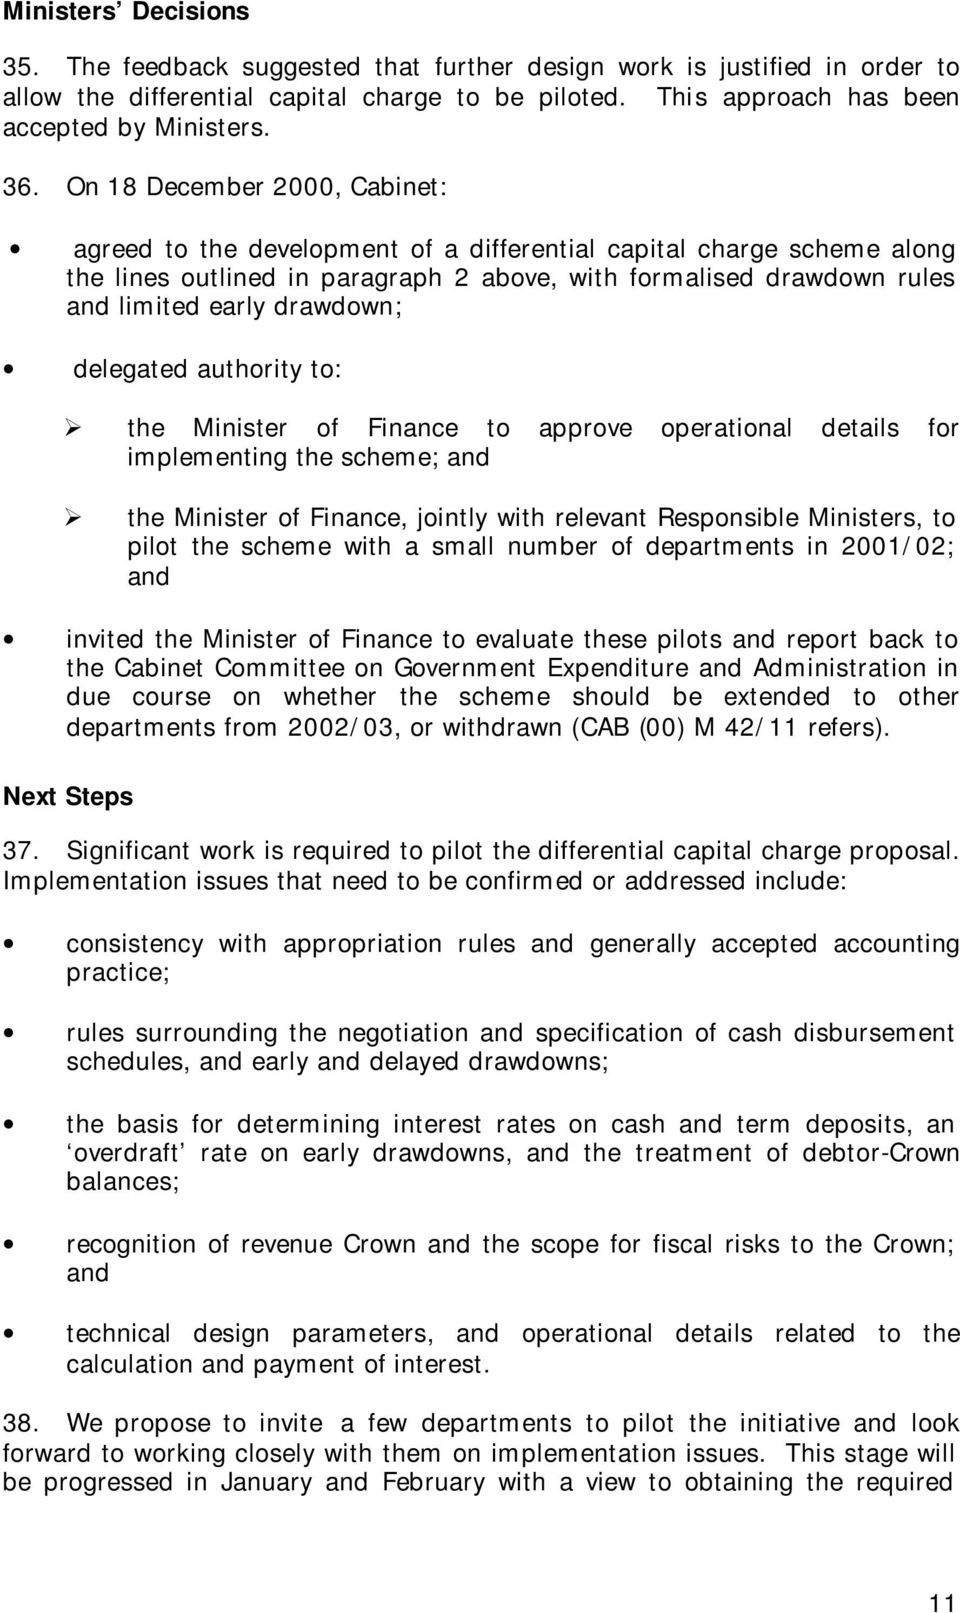 drawdown; delegated authority to: the Minister of Finance to approve operational details for implementing the scheme; and the Minister of Finance, jointly with relevant Responsible Ministers, to